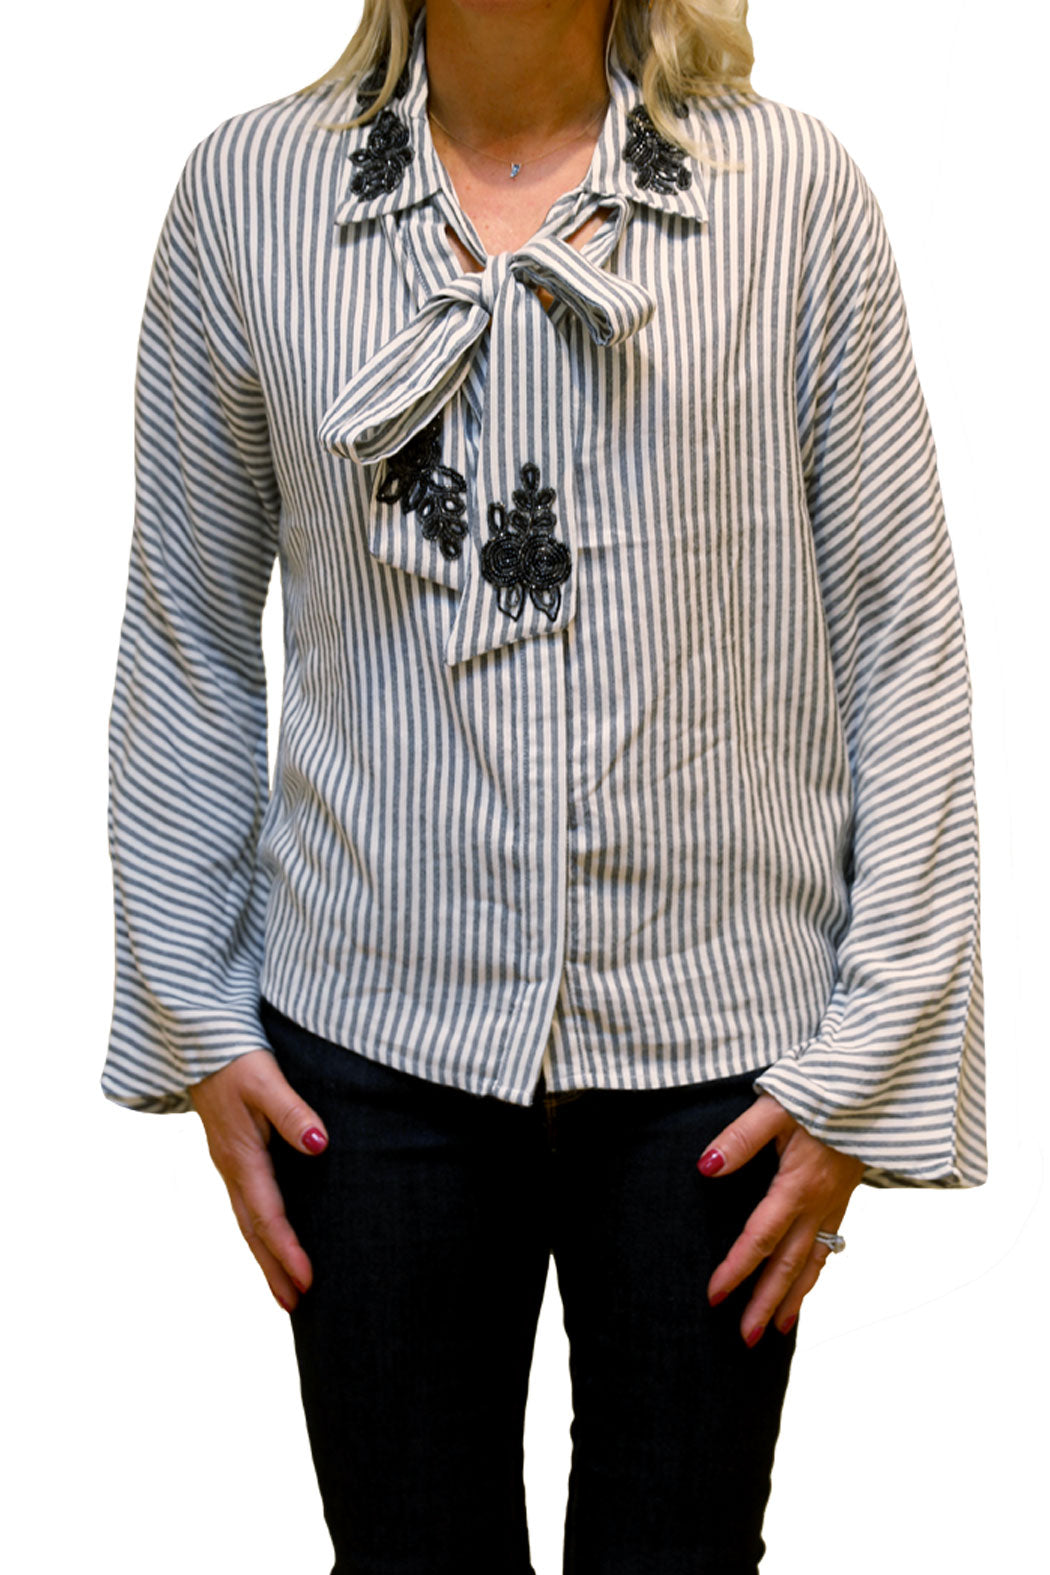 Front view of striped long sleeve blouse with embroidered detailed at collar and neck tie.